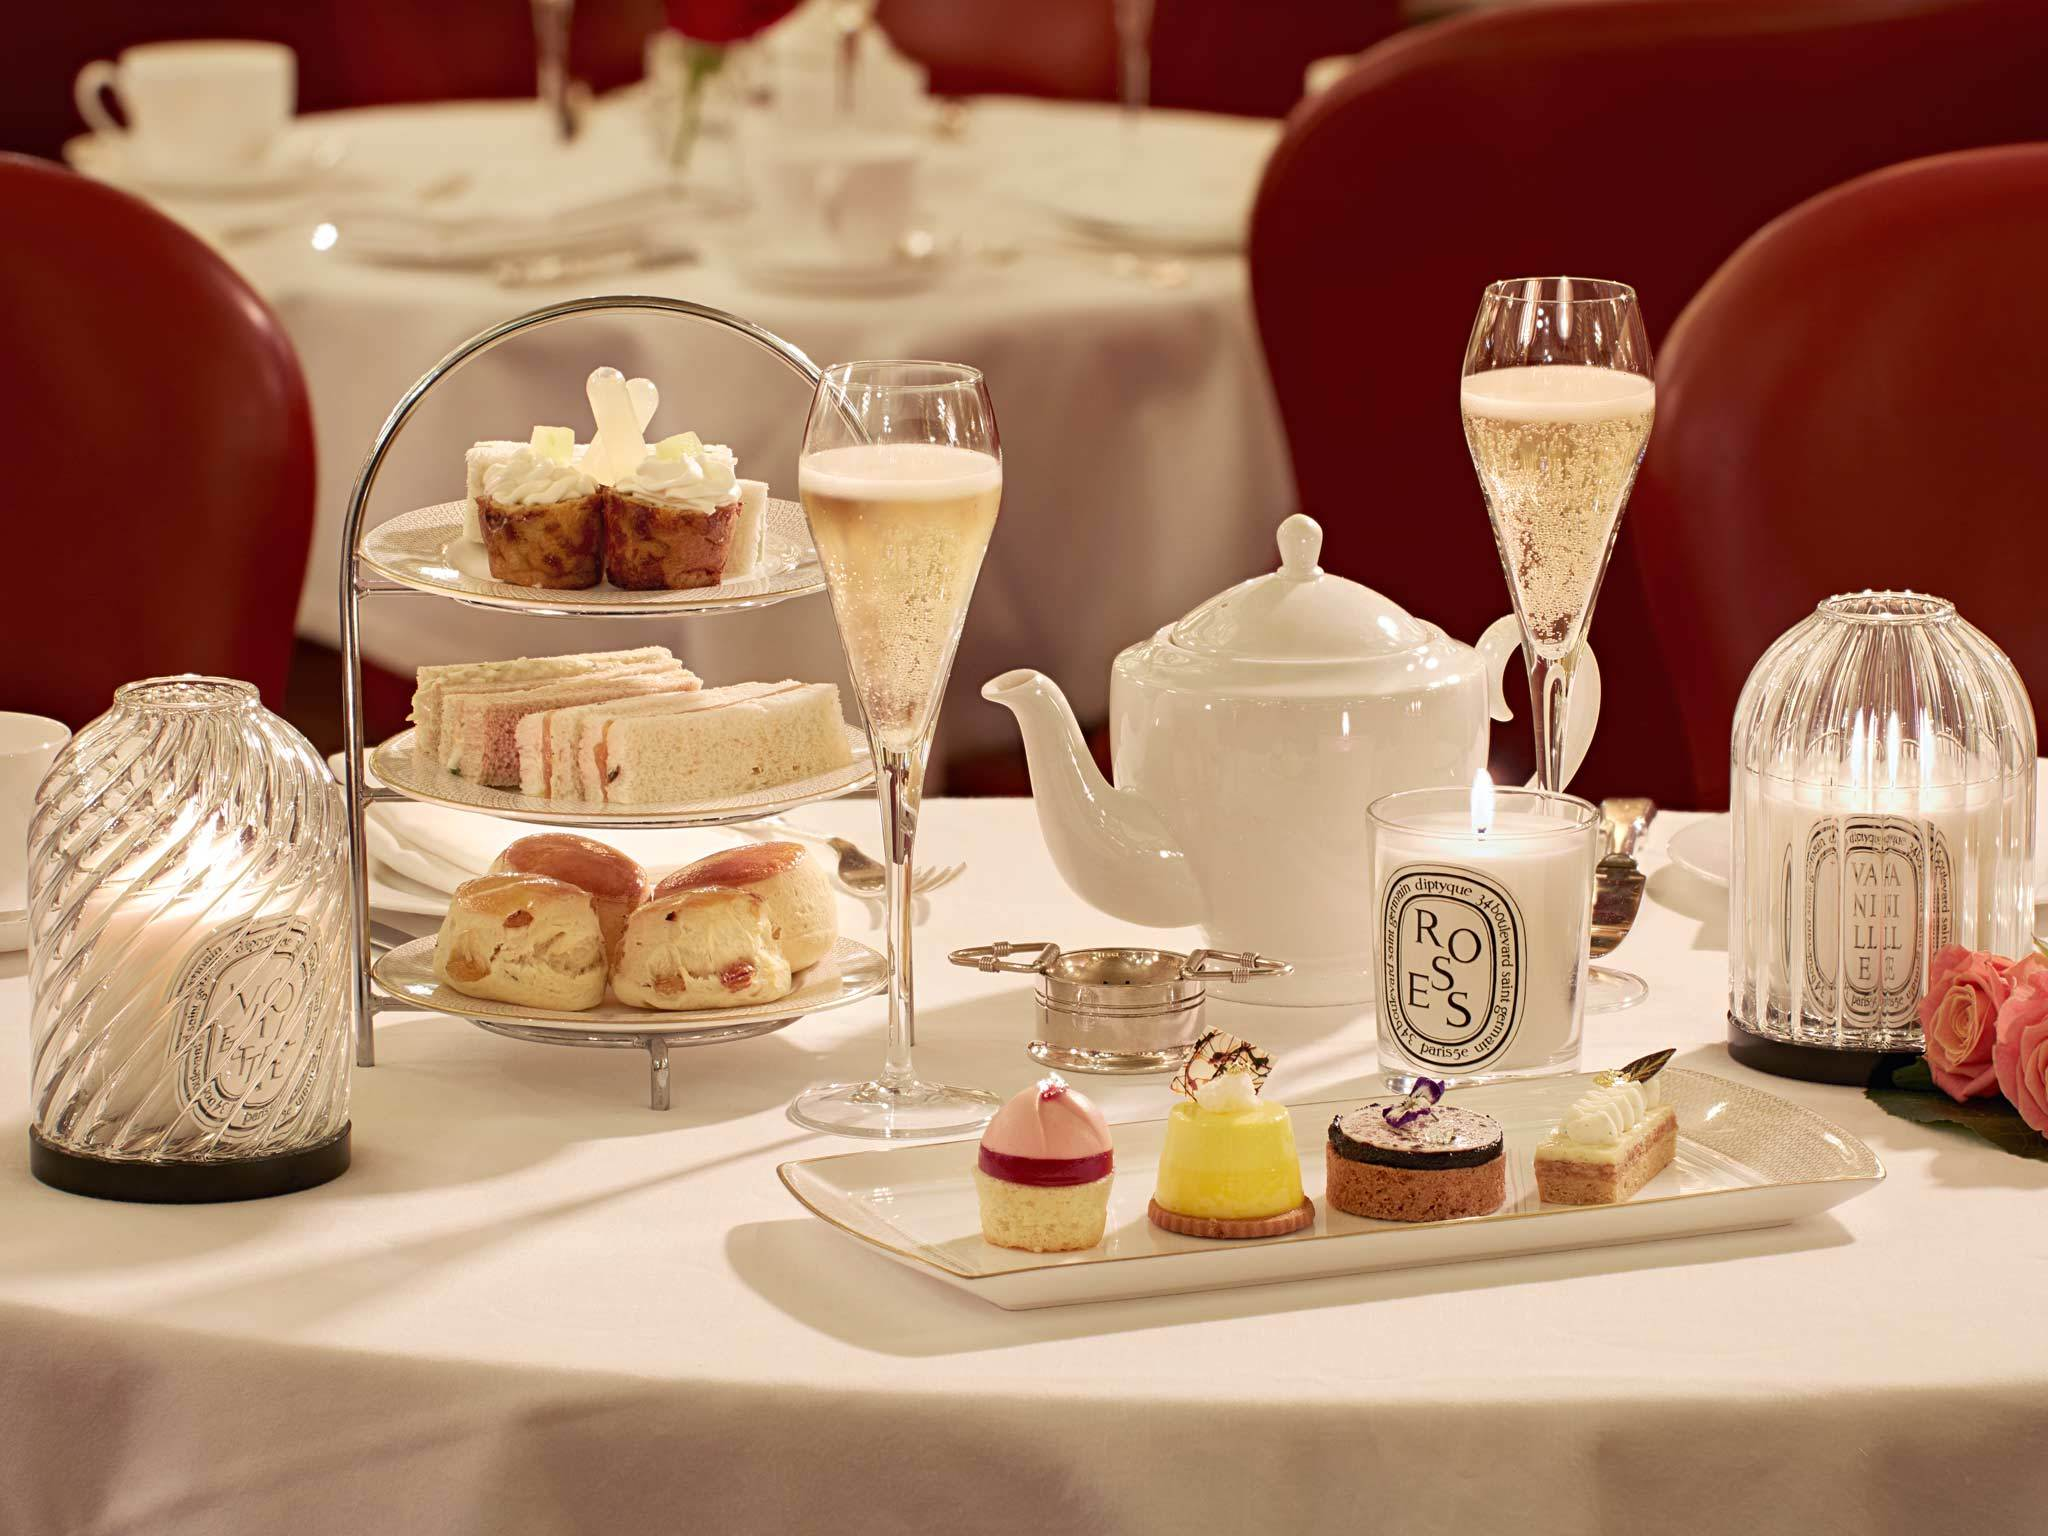 Diptyque Afternoon Tea at the Hotel Café Royal